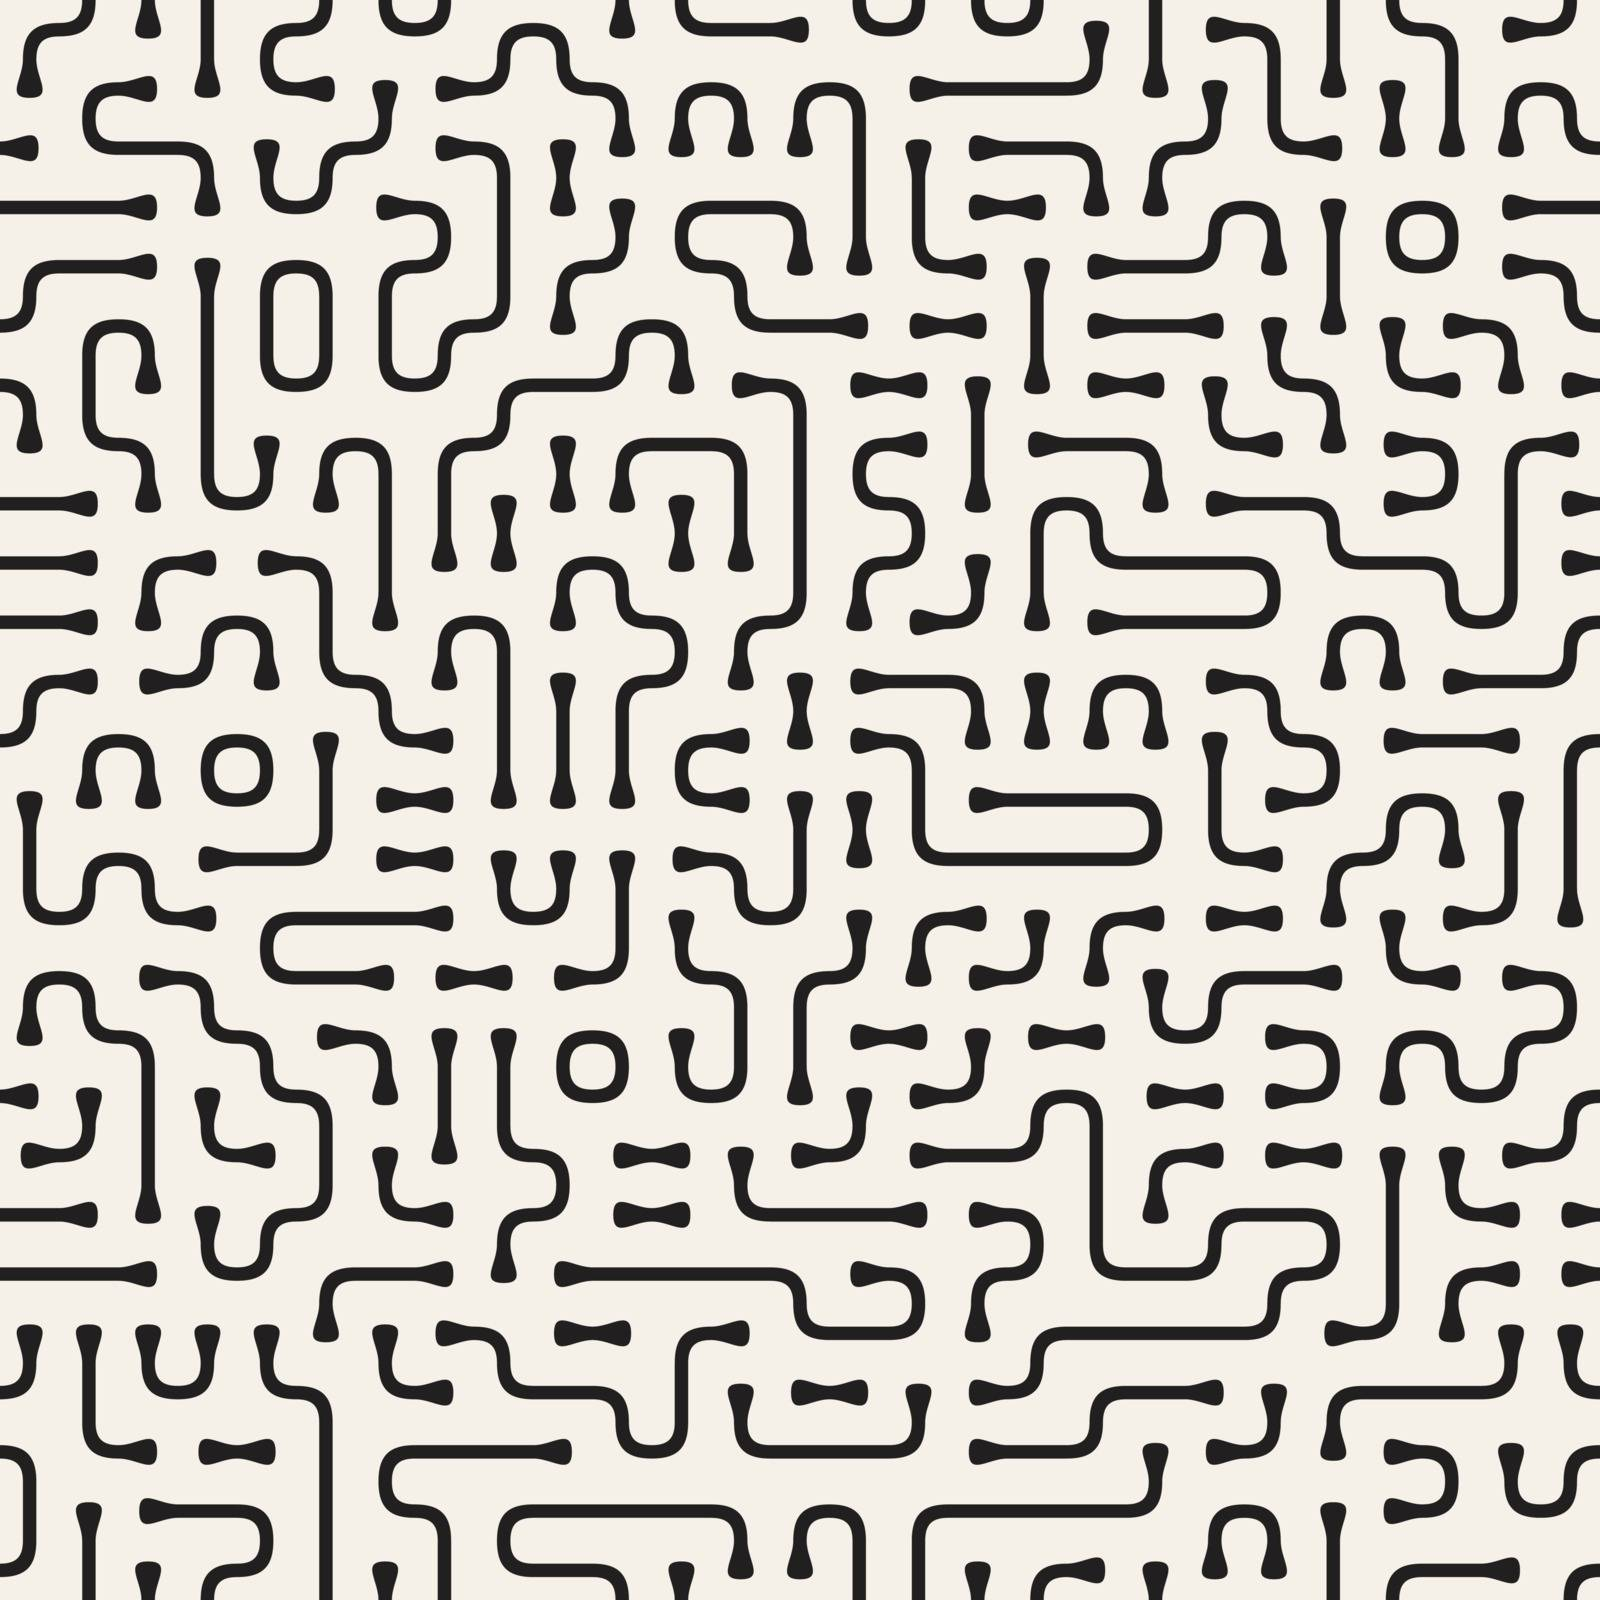 Irregular Rounded Lines. Abstract Geometric Background Design. Vector Seamless Black and White Pattern.